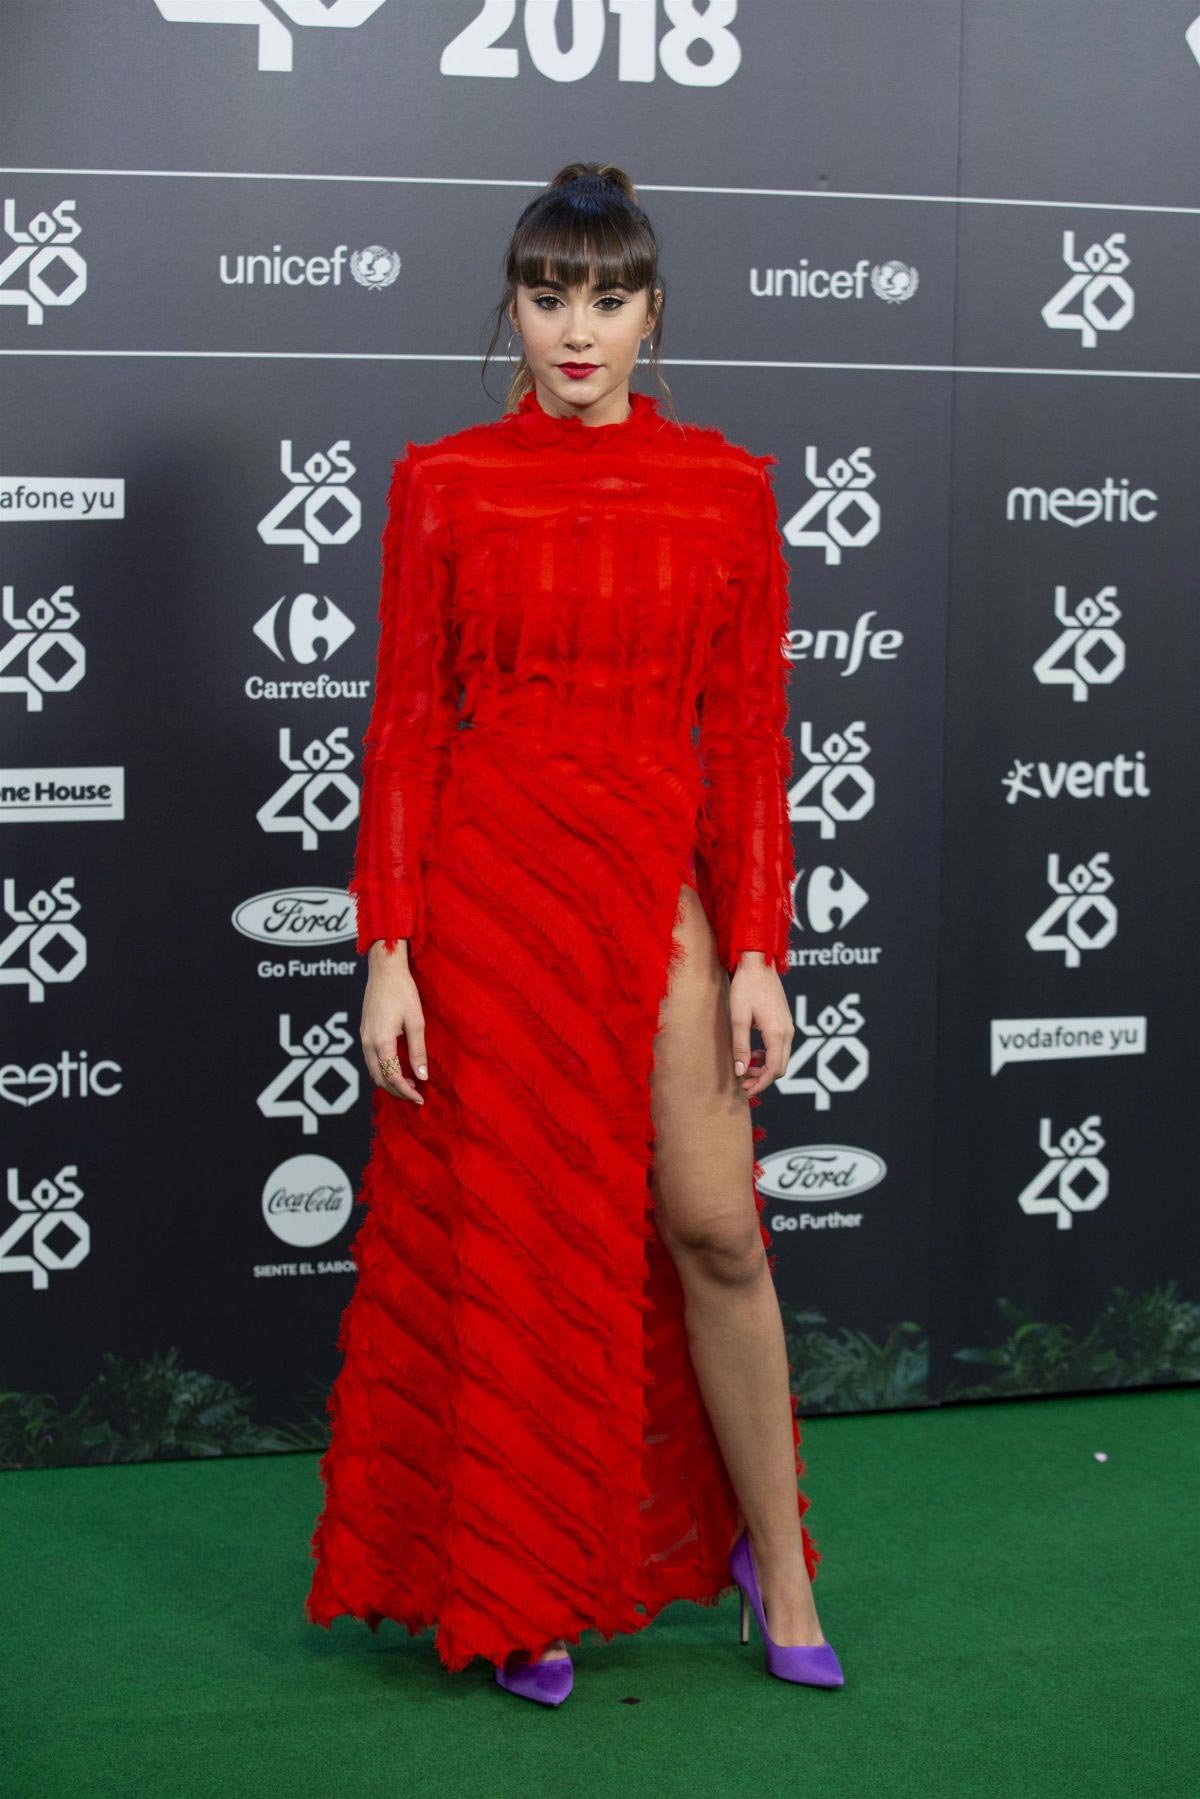 Aitana at Los40 Music Awards 2018 in Madrid 2018/11/02 1